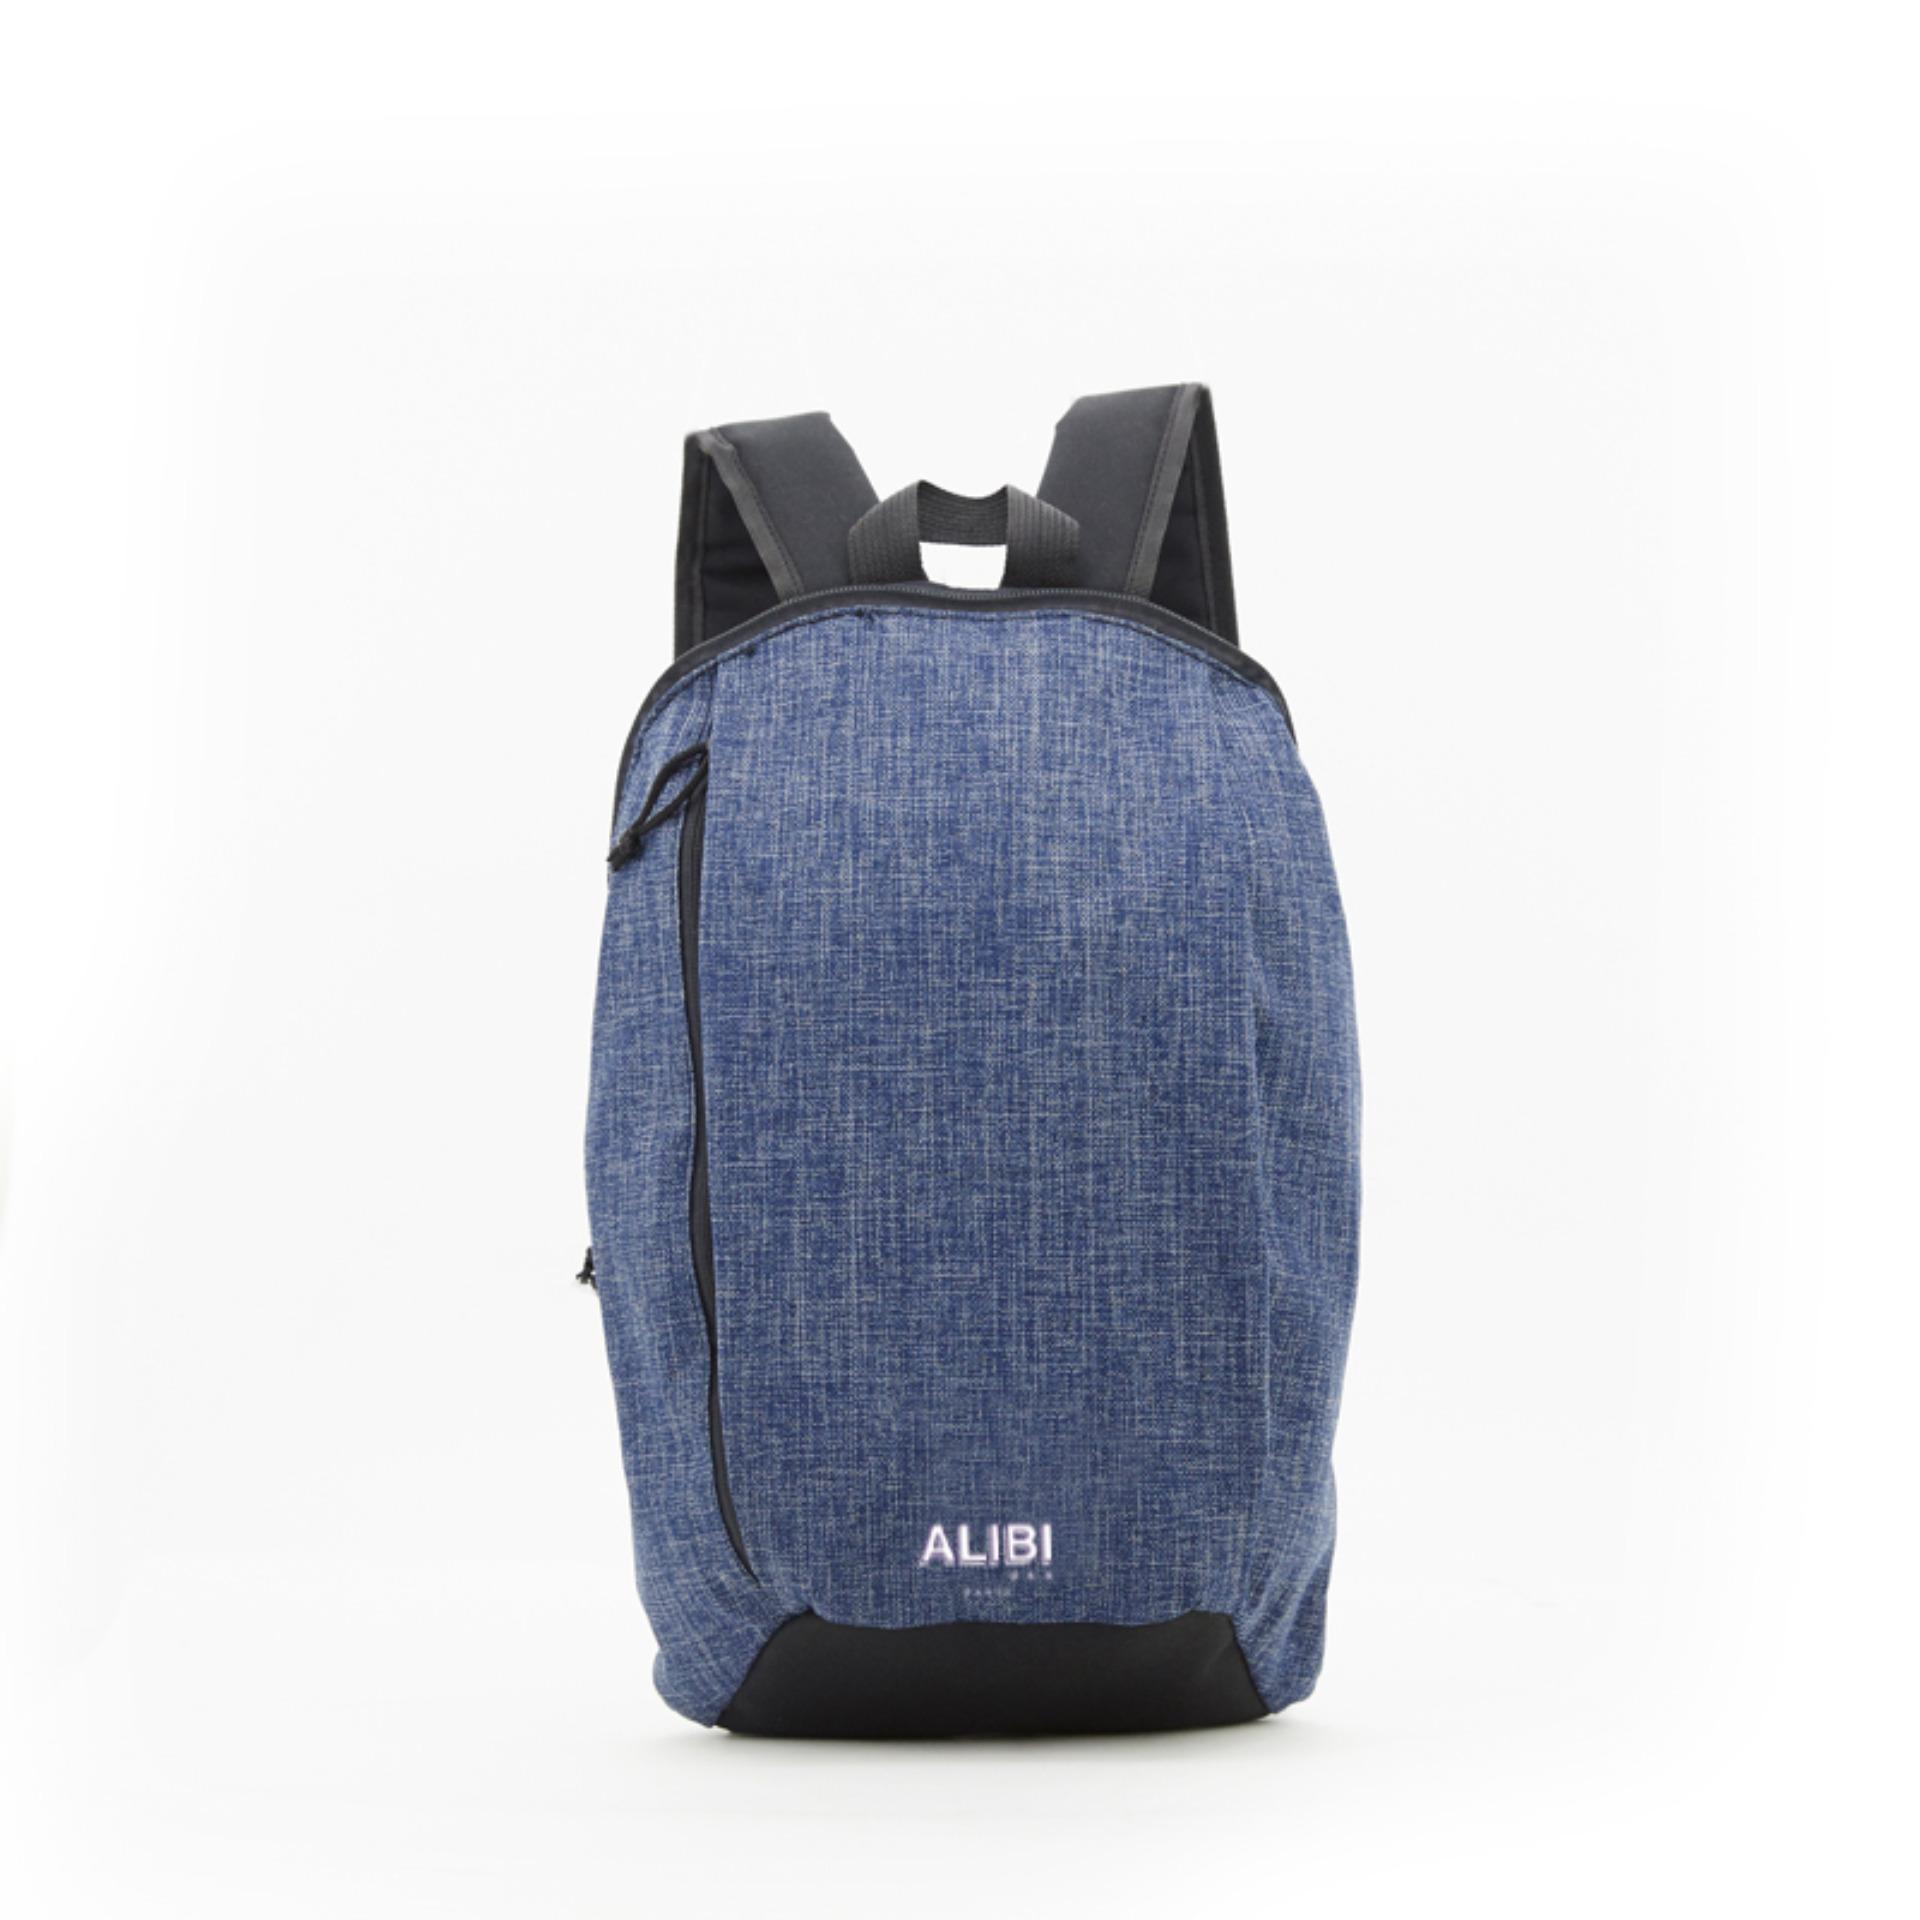 Review Tentang Alibi Paris Alston Bag